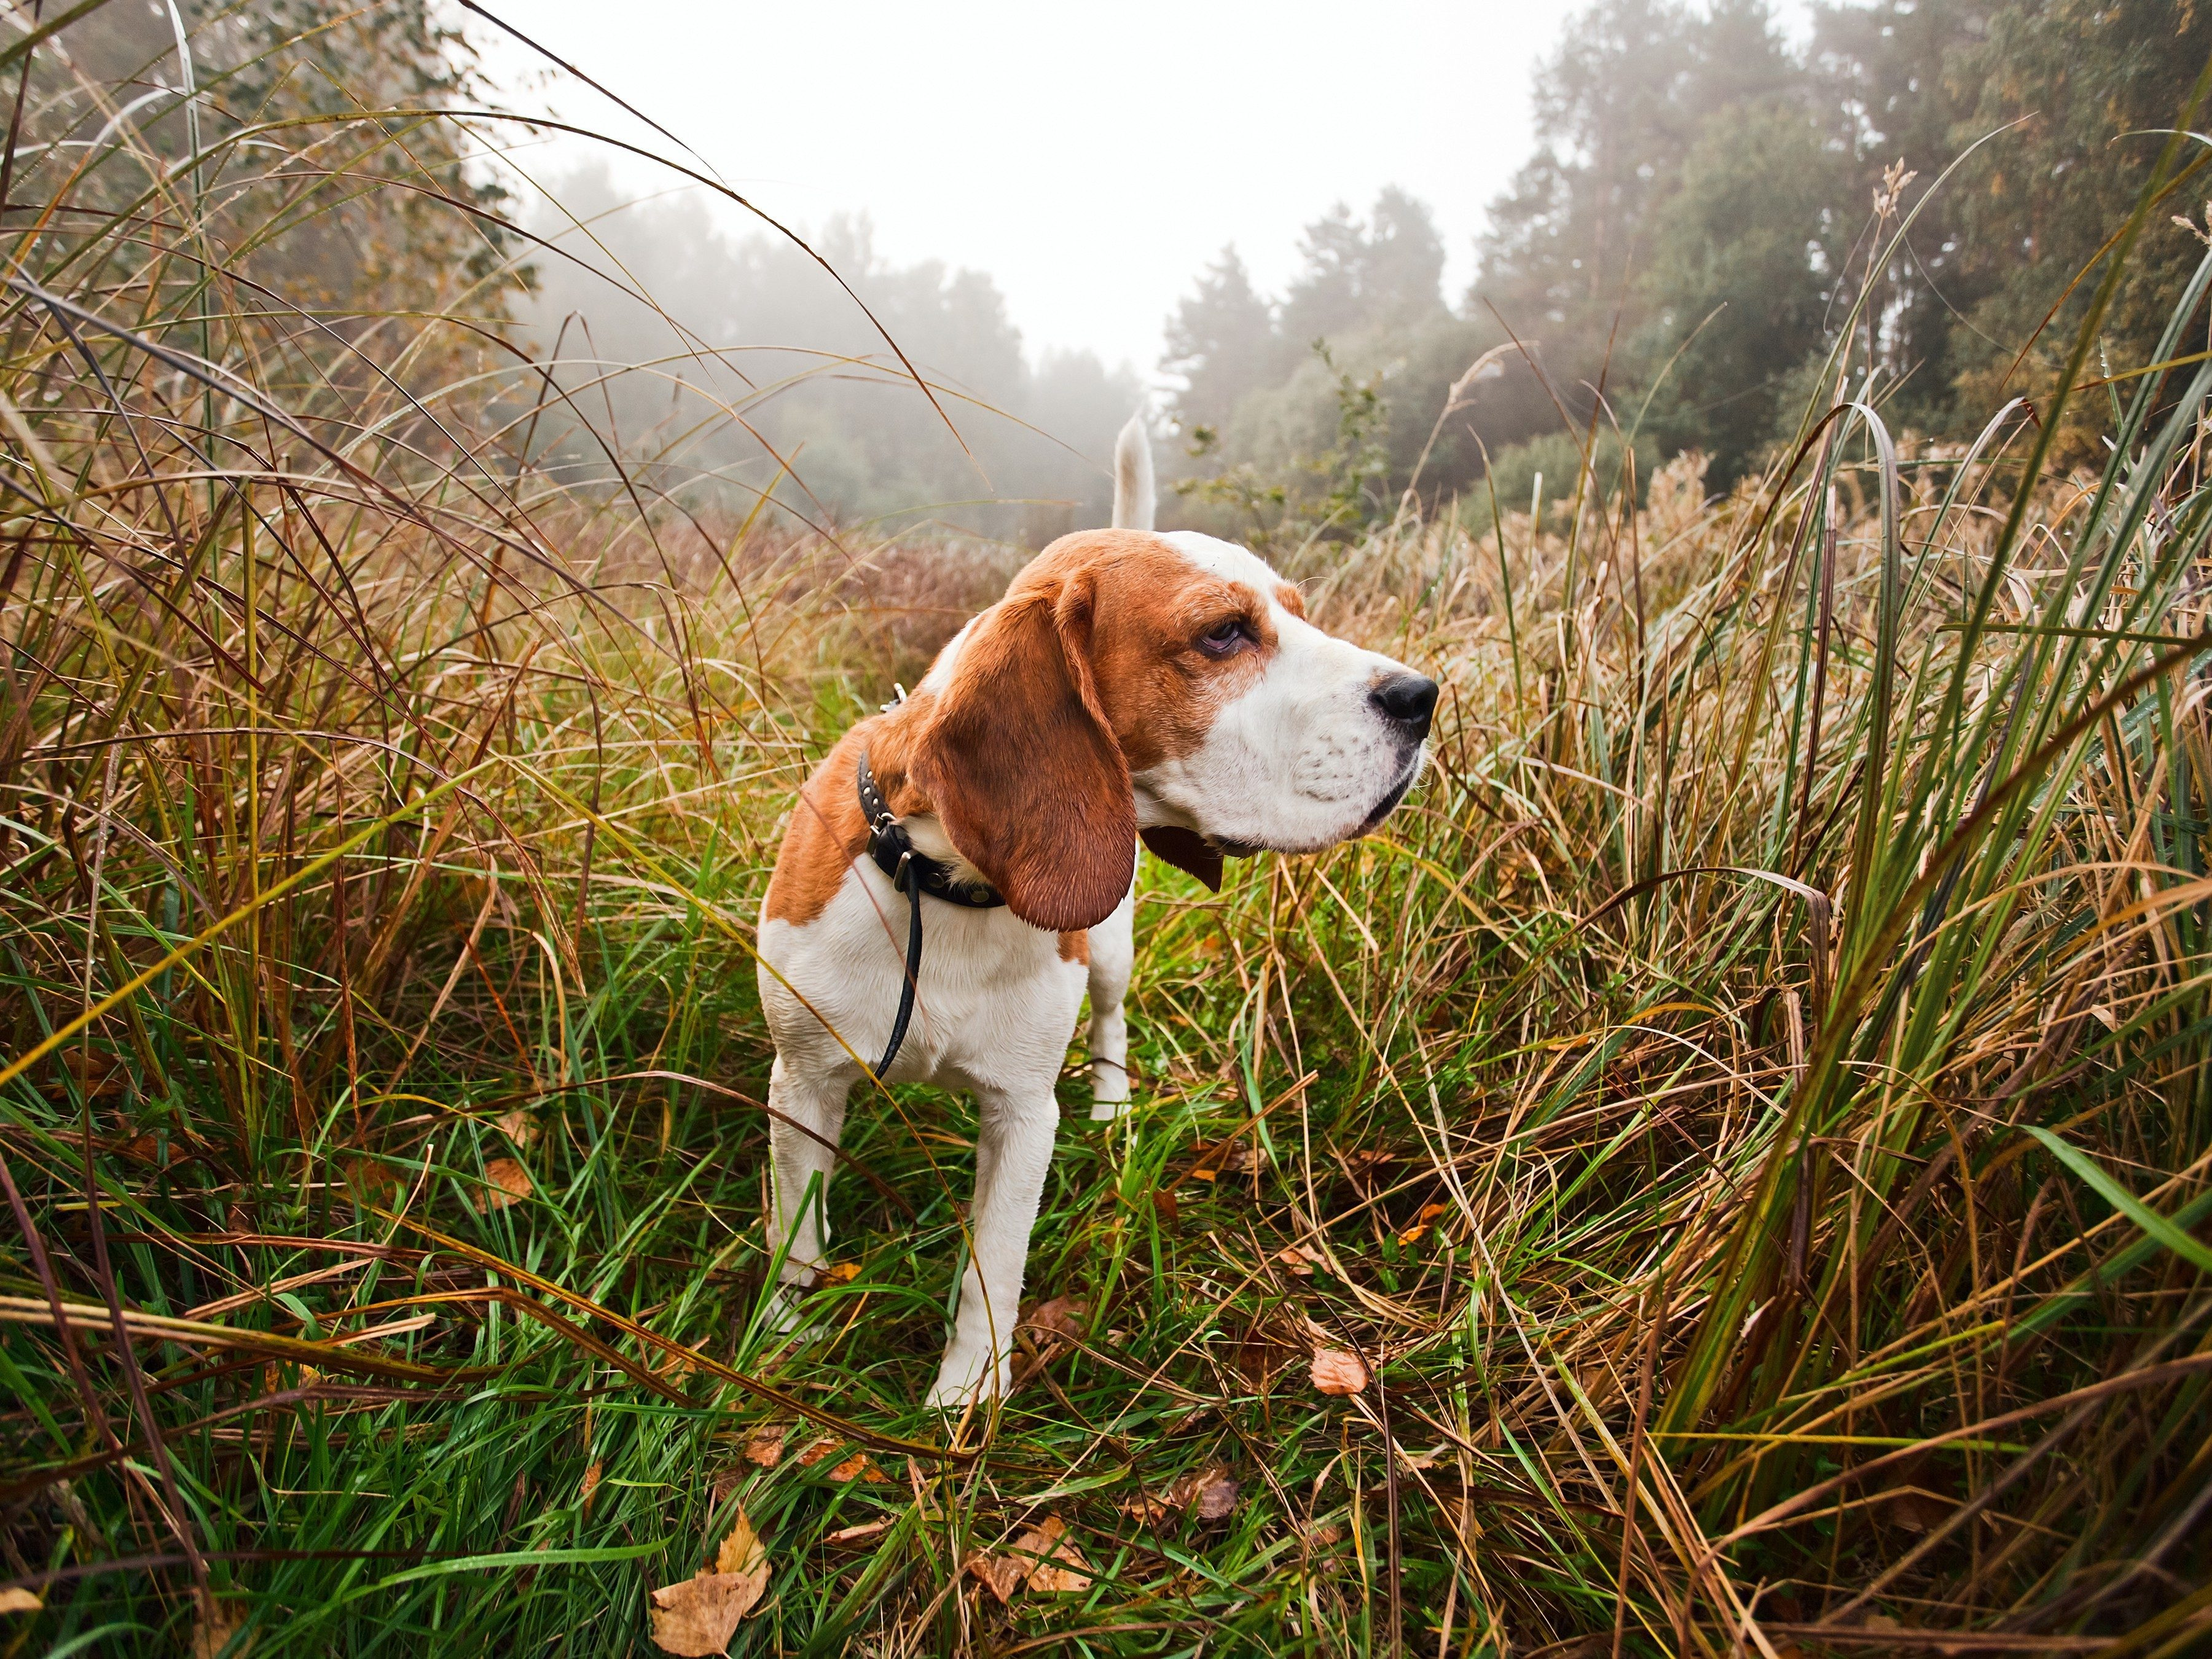 4. Plan a Treasure Hunt for Your Dog